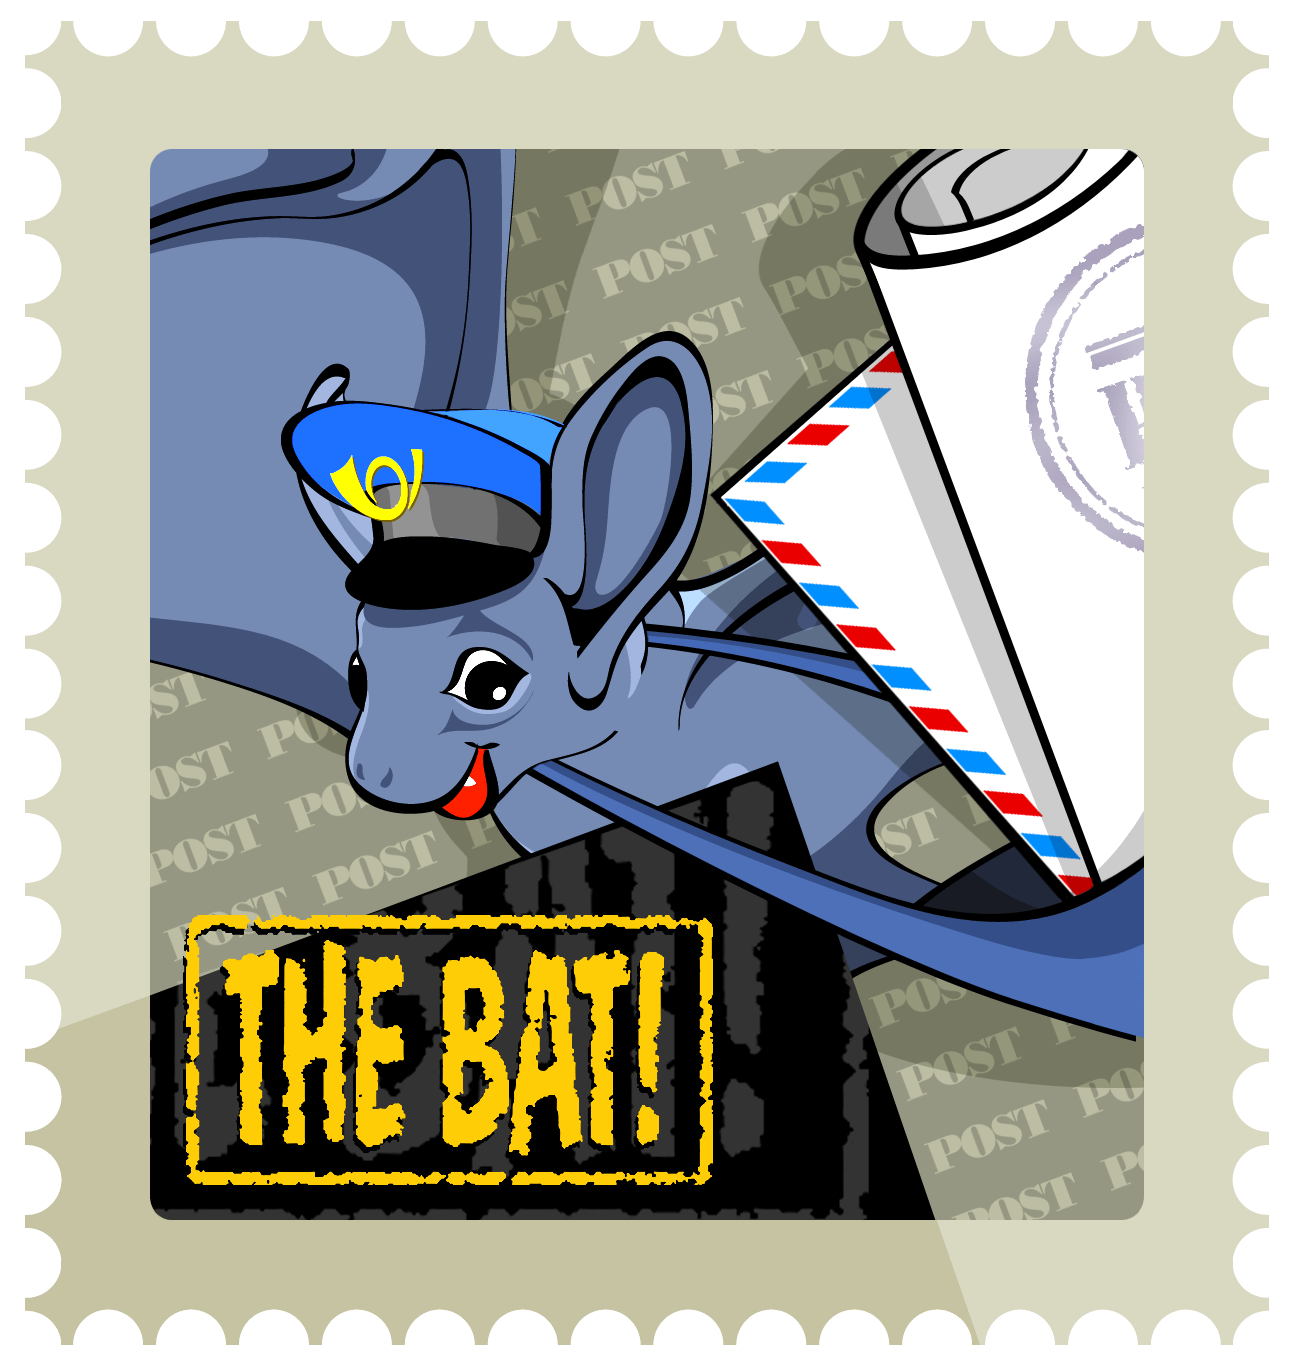 The Bat! Professional Edition 9.0.8 Key With Crack Patch Is Here!